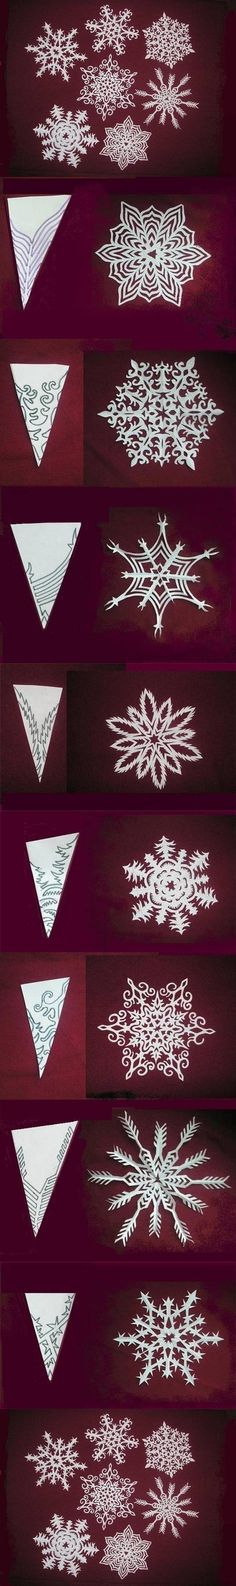 Love these patterns for cut out snowflakes